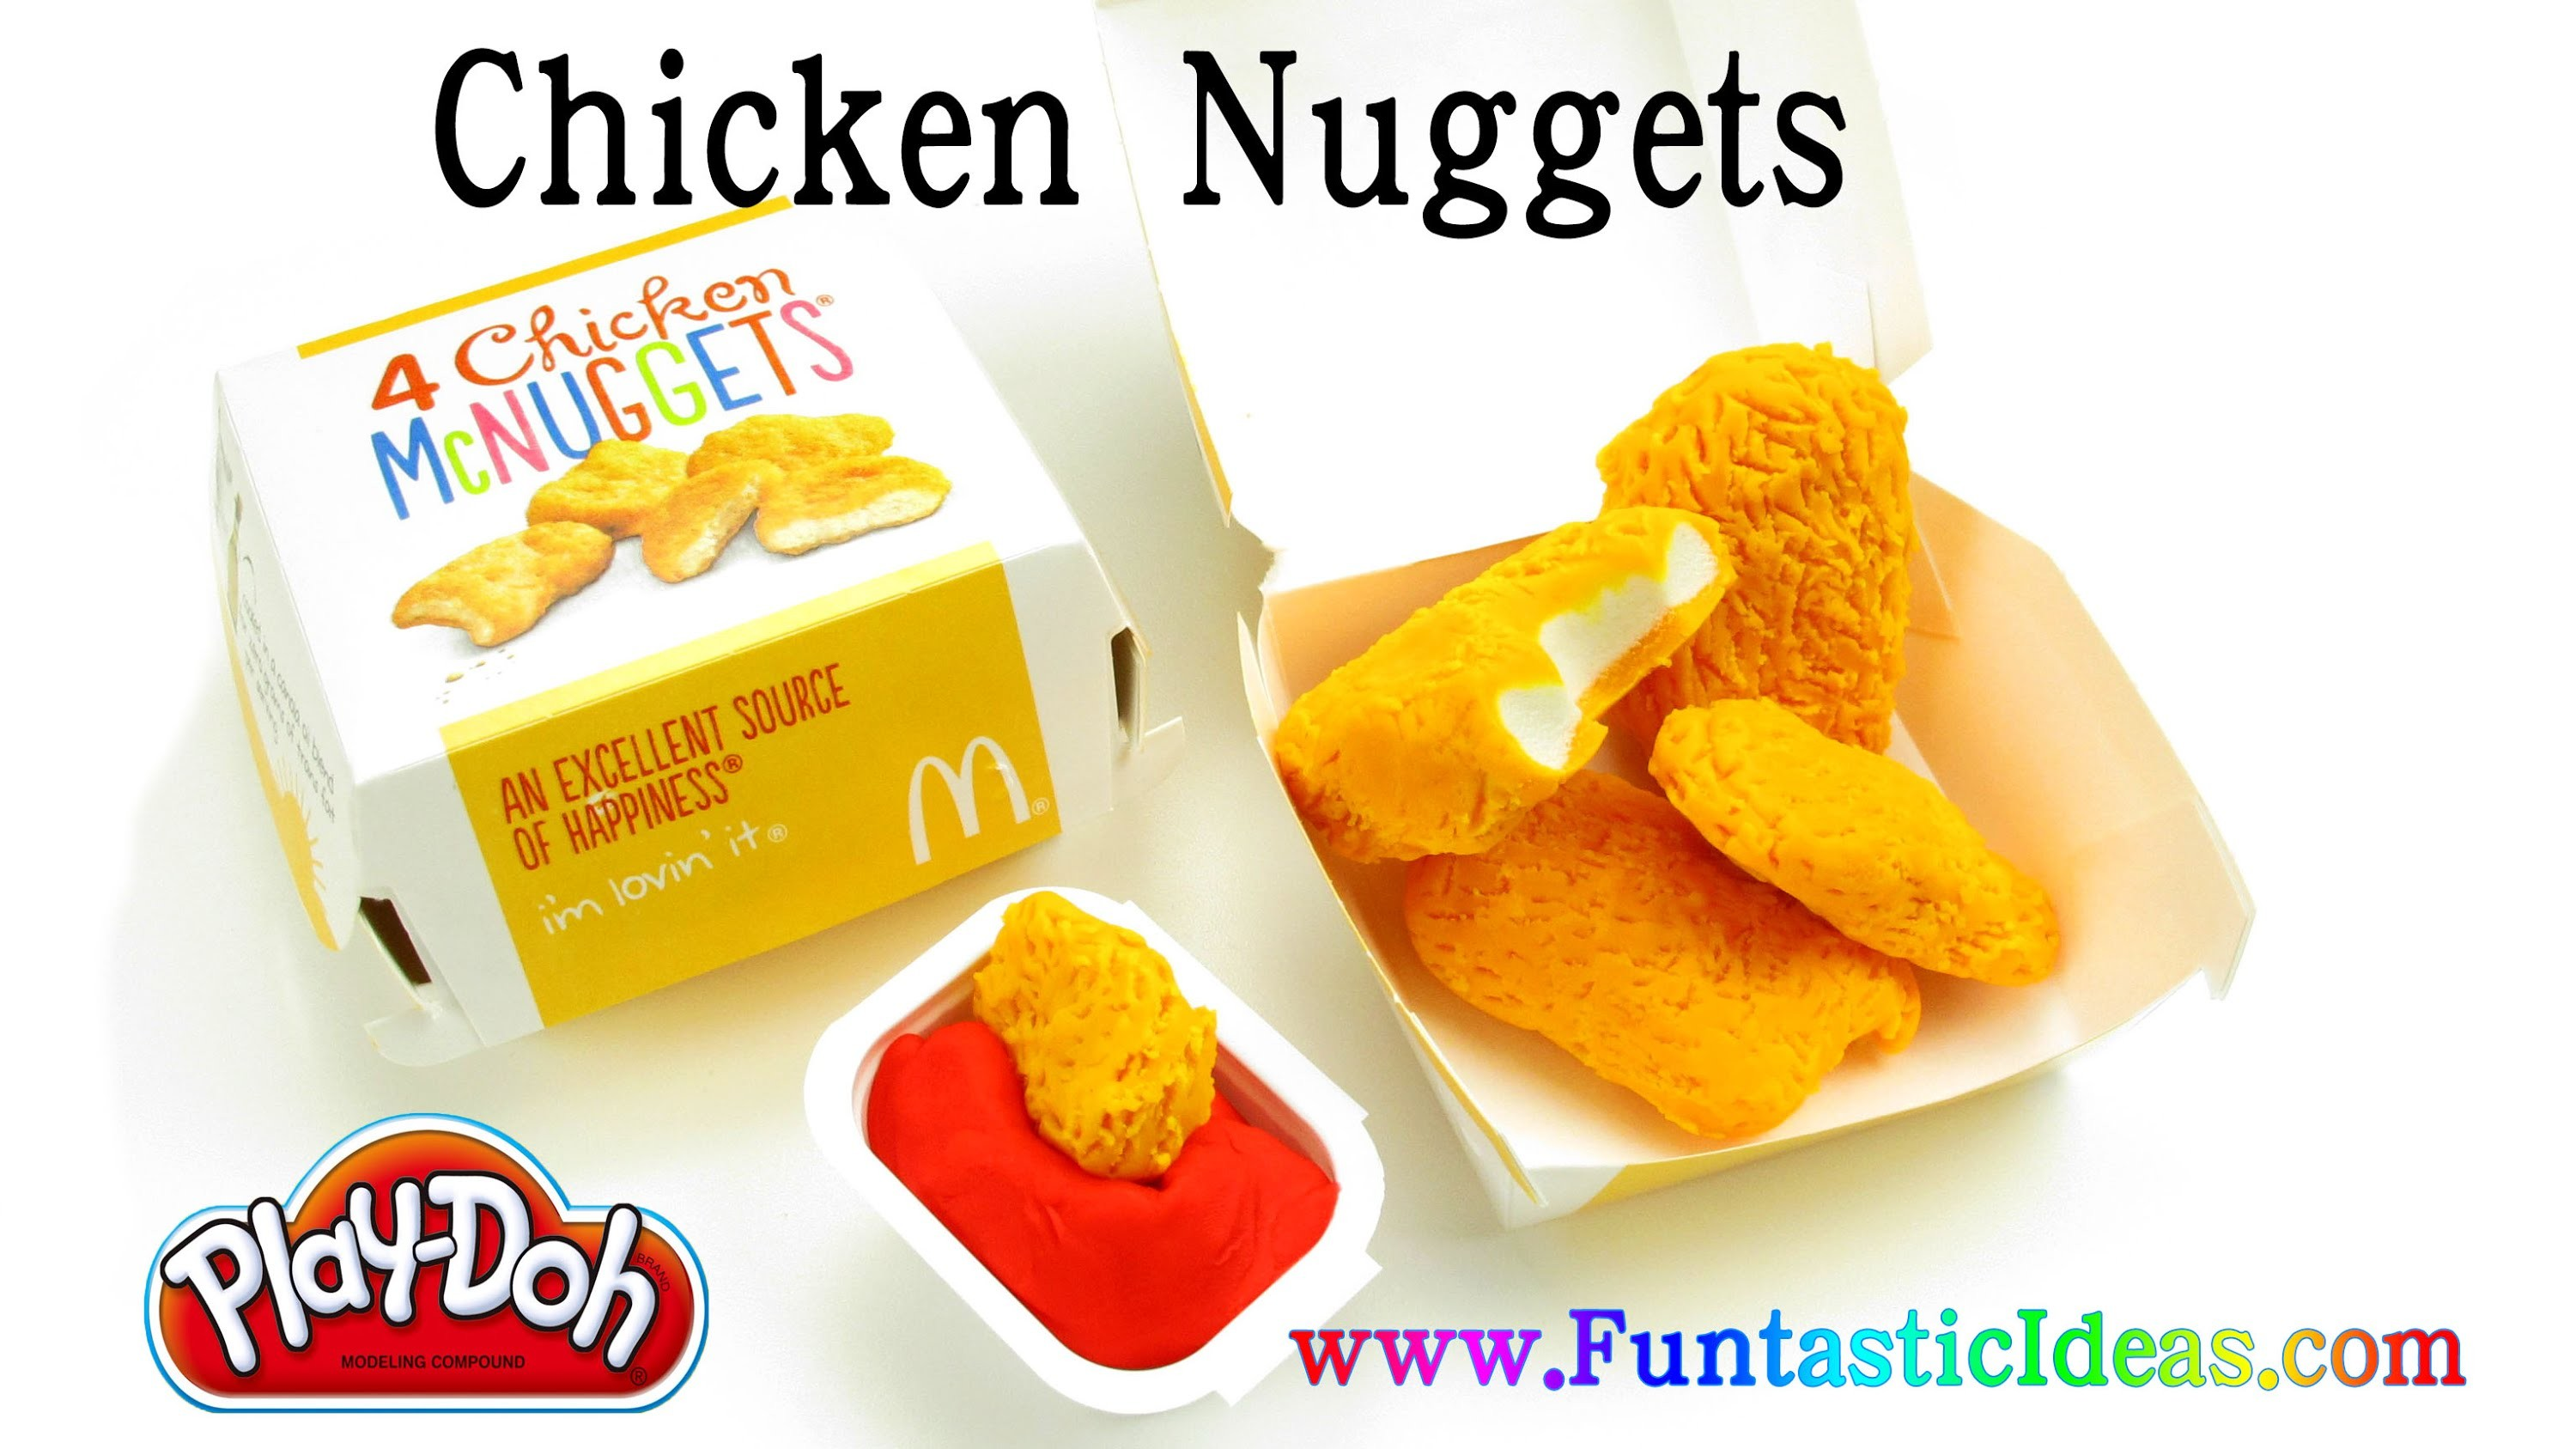 Play Doh Chicken Nuggets and Catch-Up.Sauce McDonald's Happy Meal - How to by Funtastic ideas